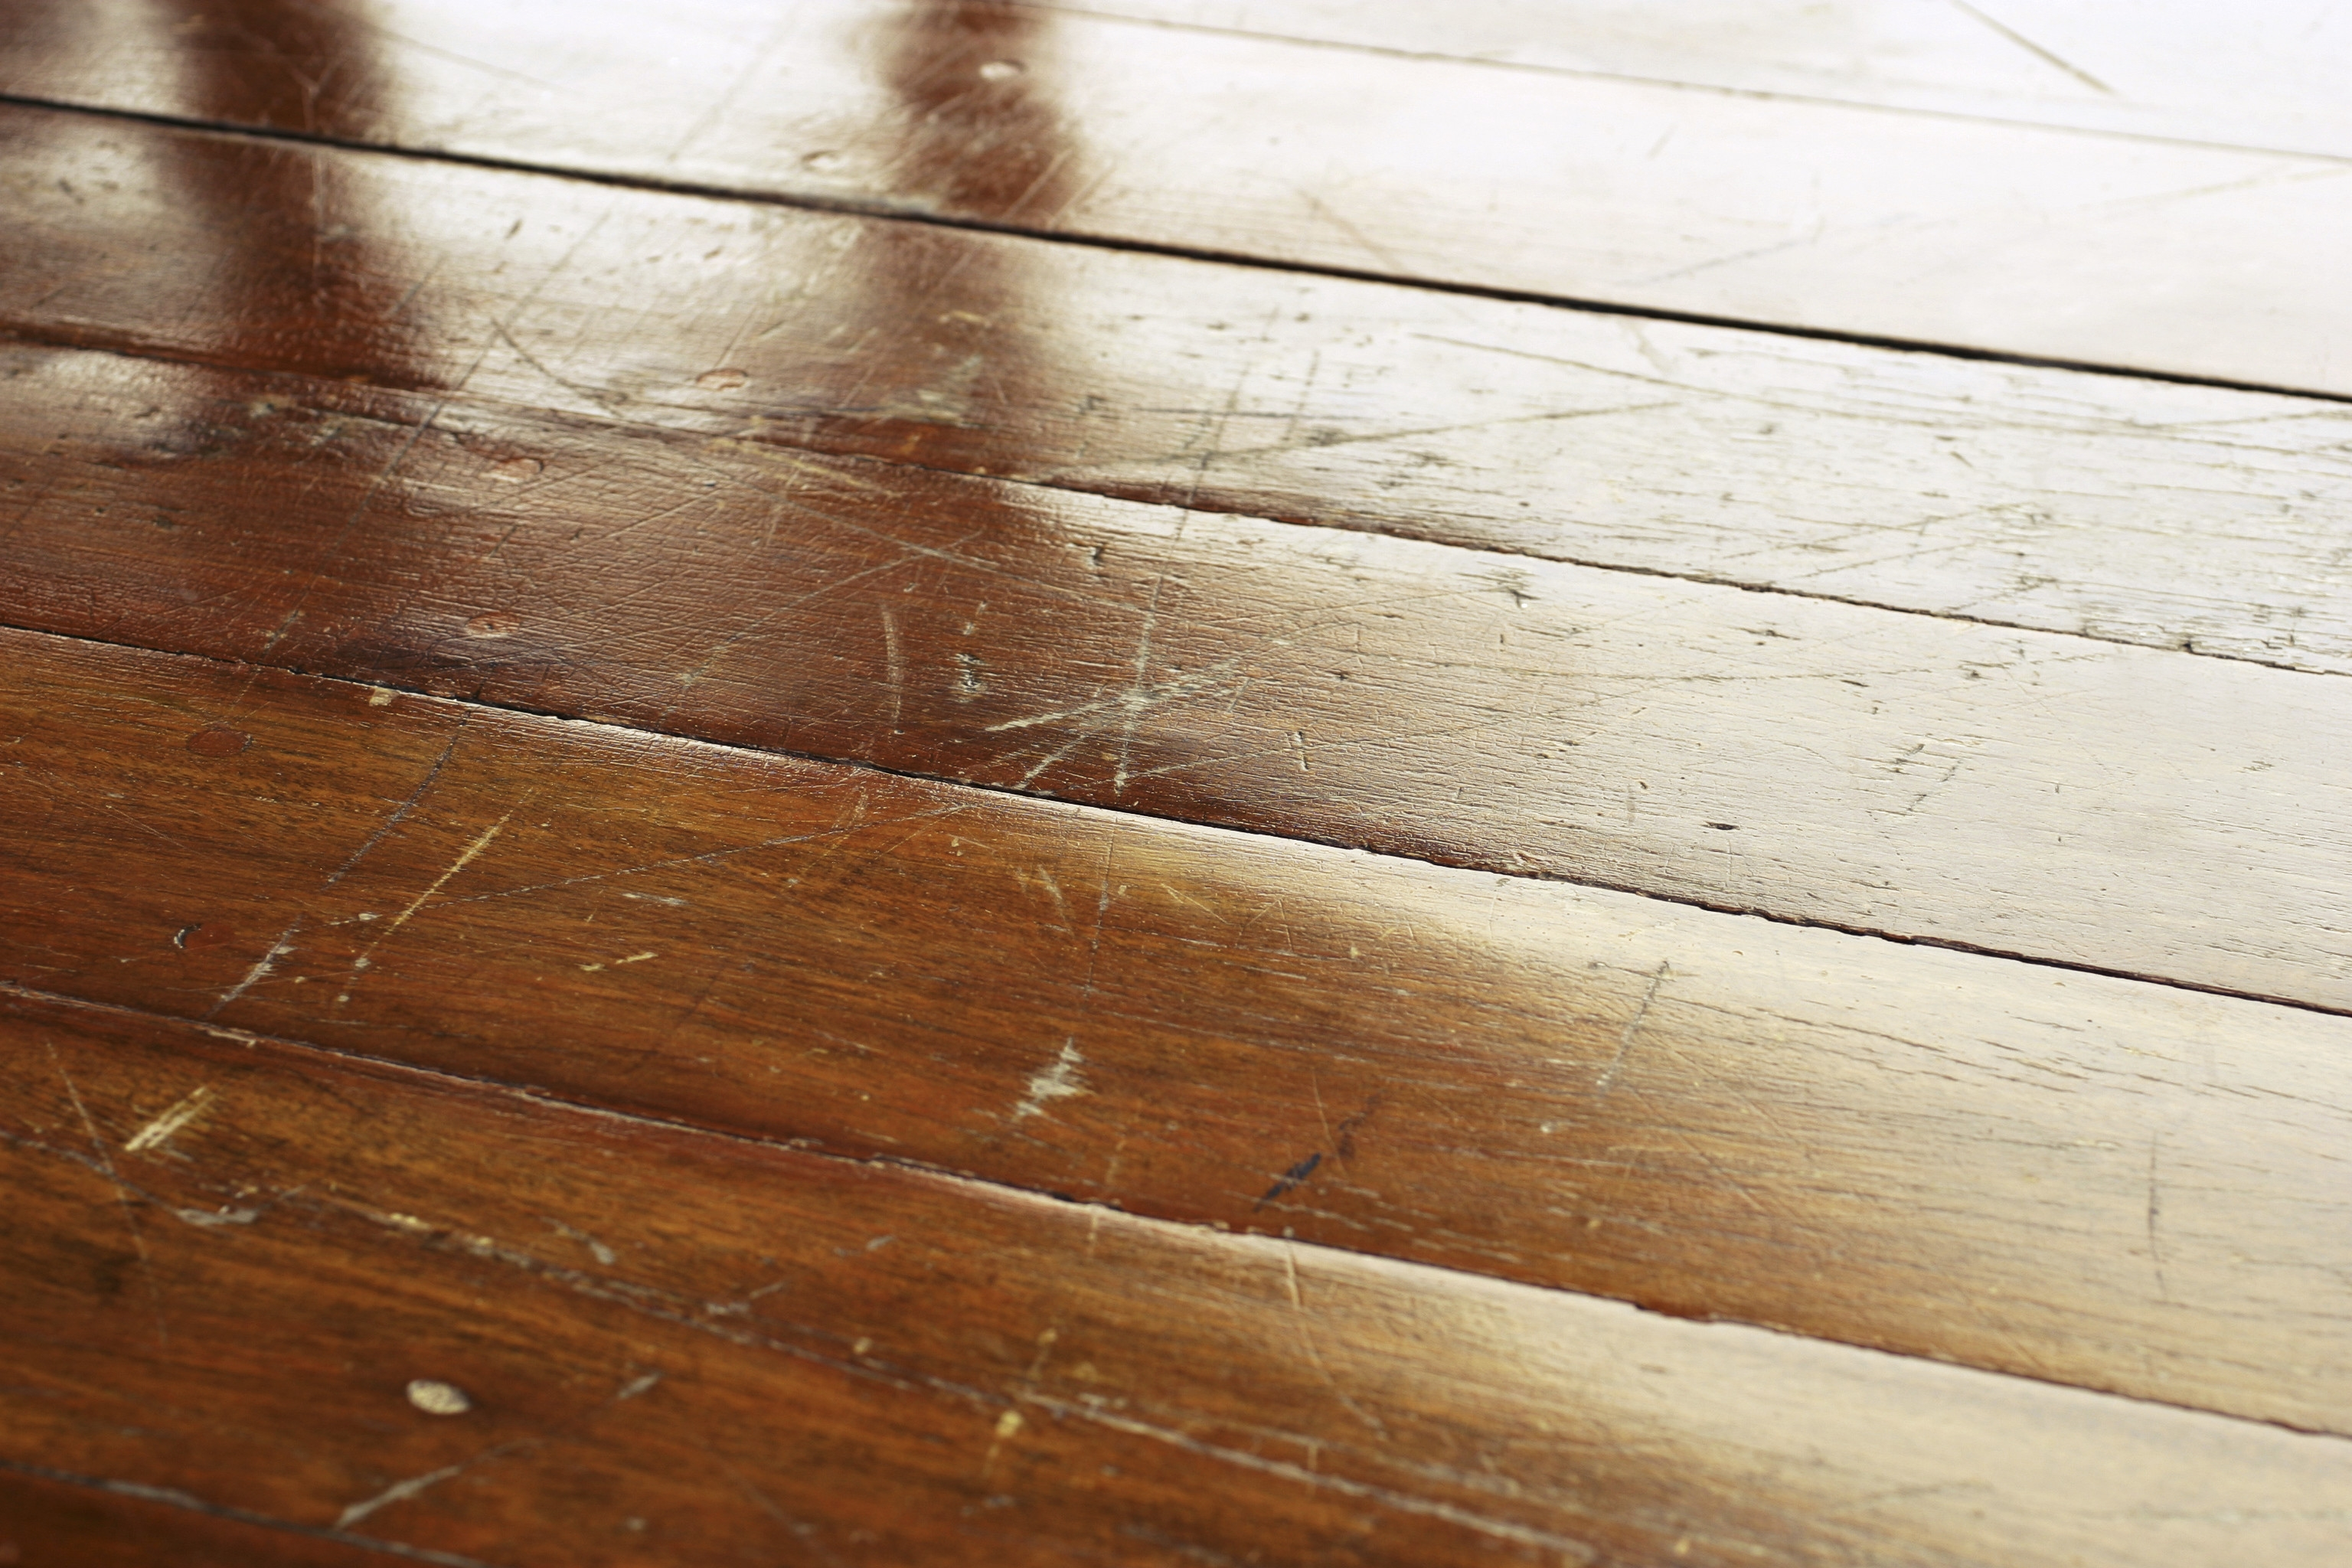 Type Of Nails For Wood Flooring